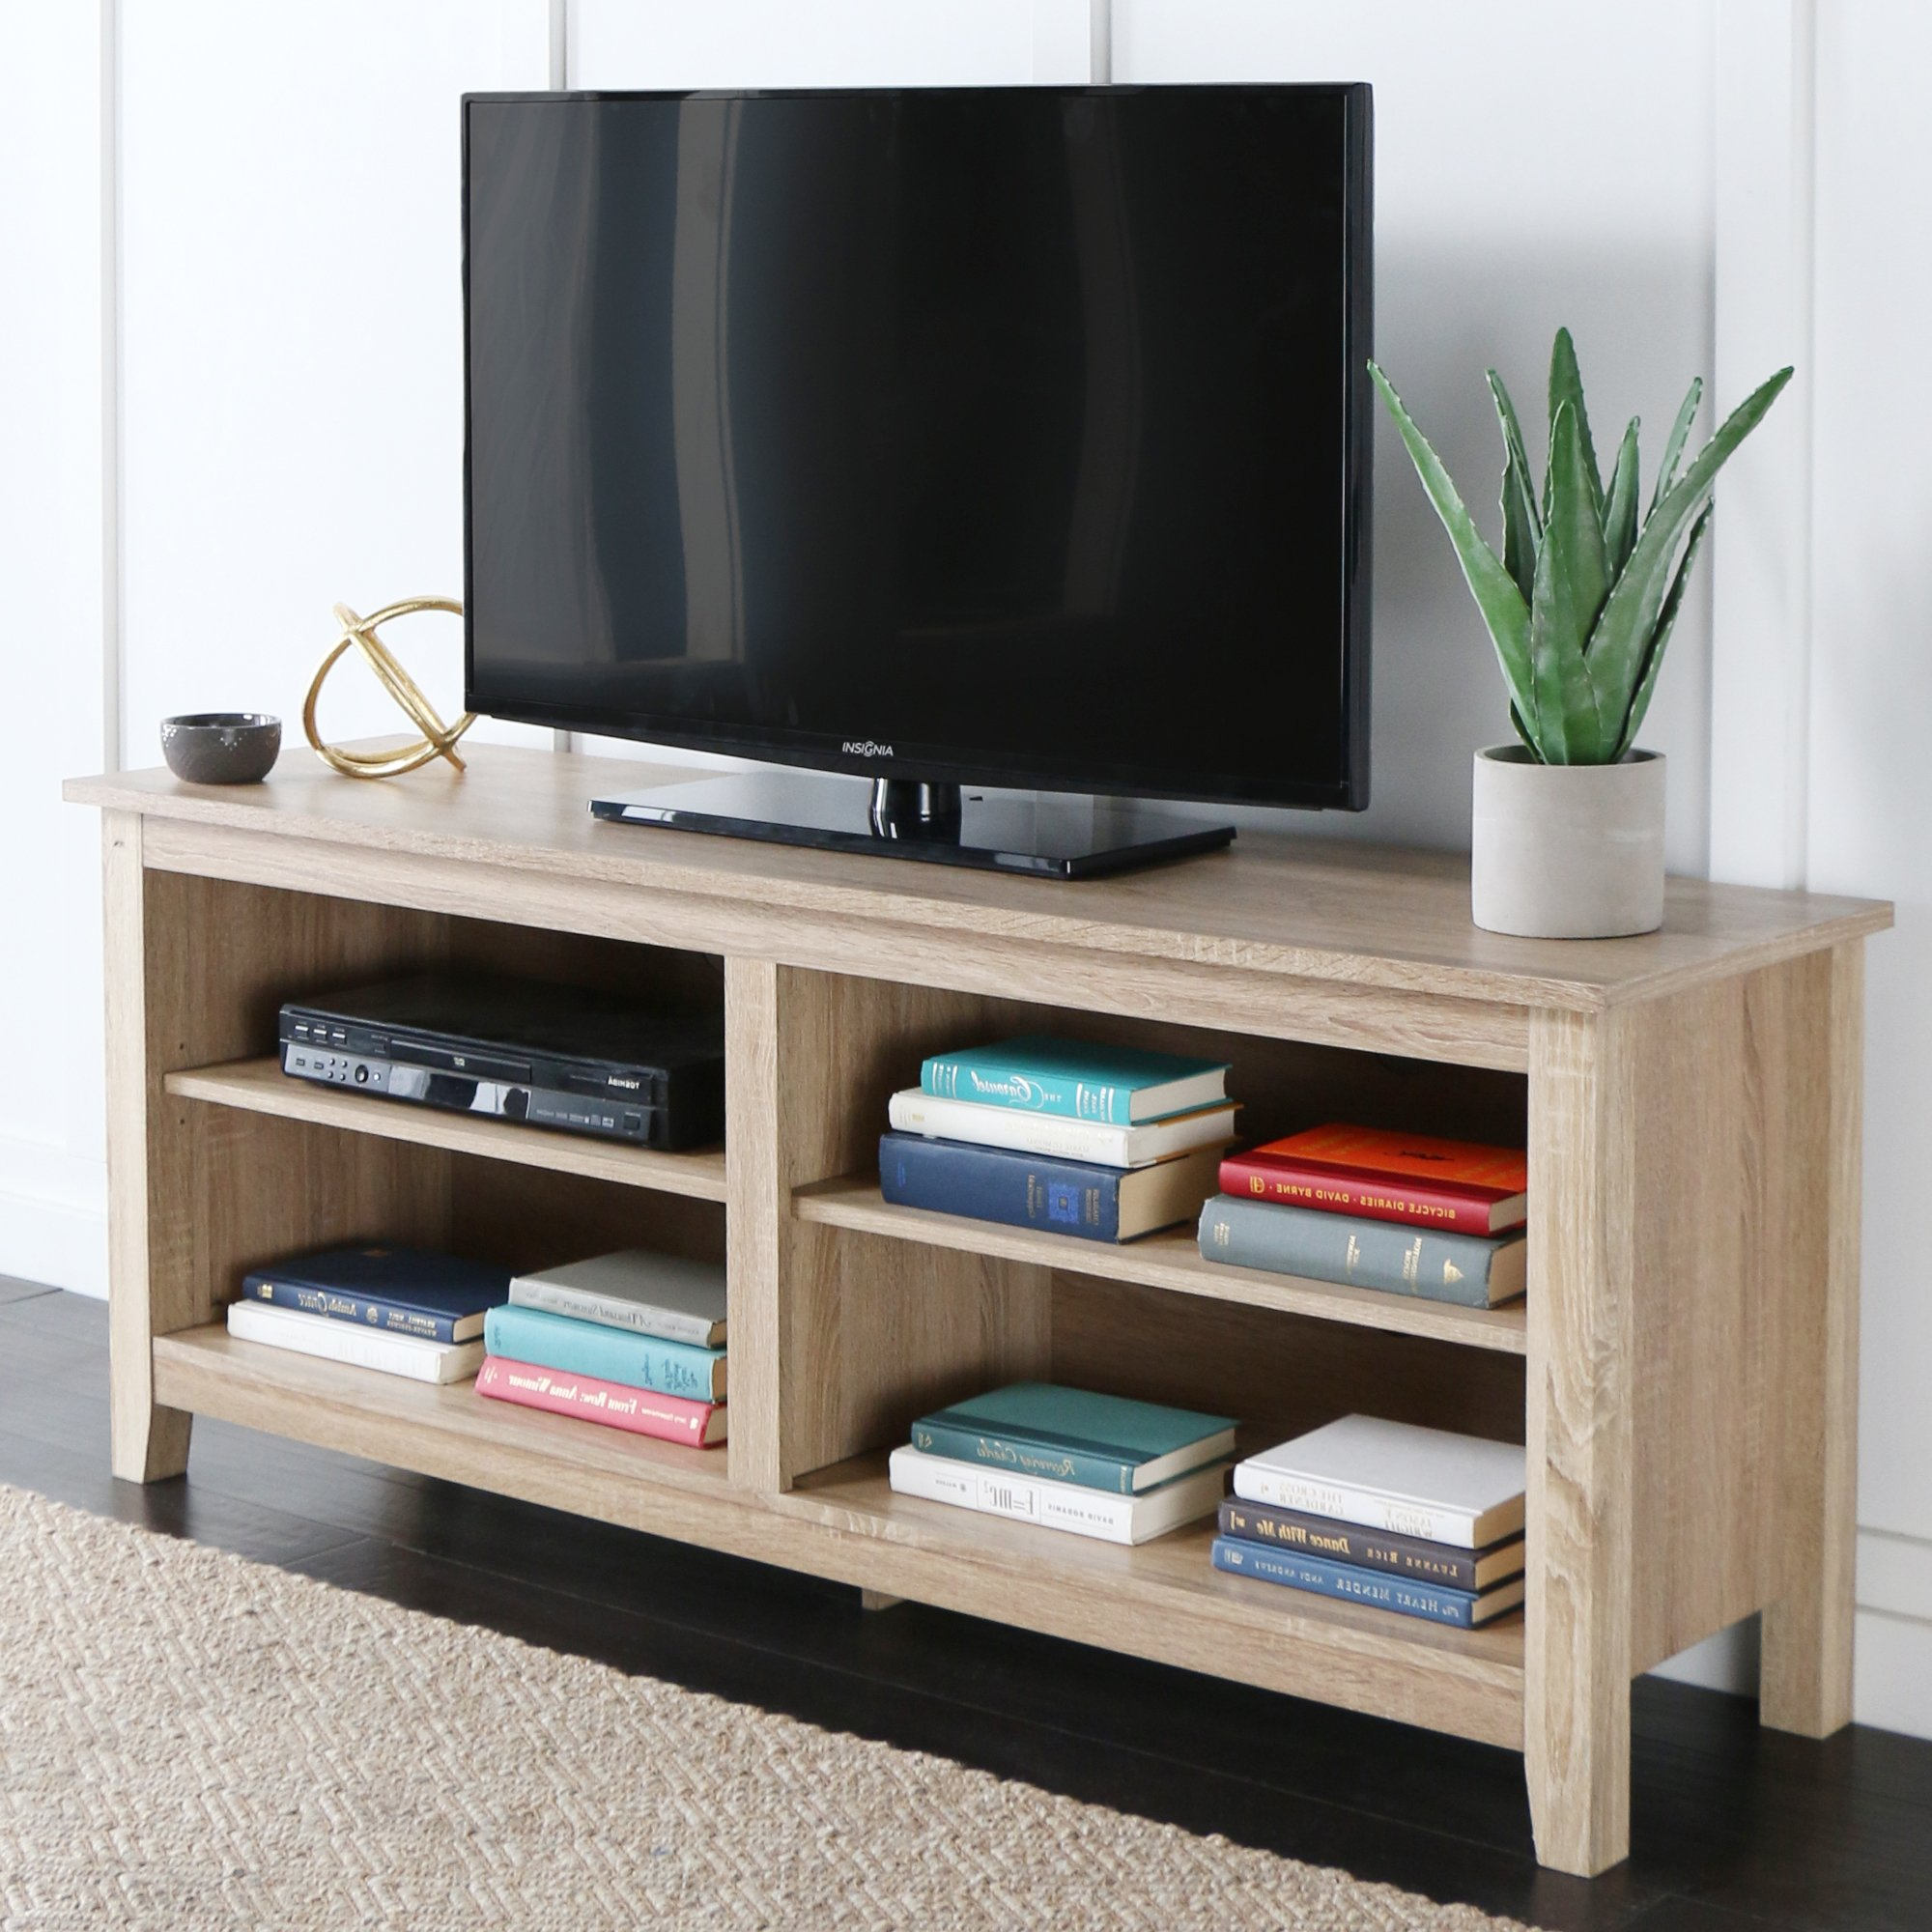 WE Furniture 58'' Wood TV Stand Storage Console, Natural by WE Furniture